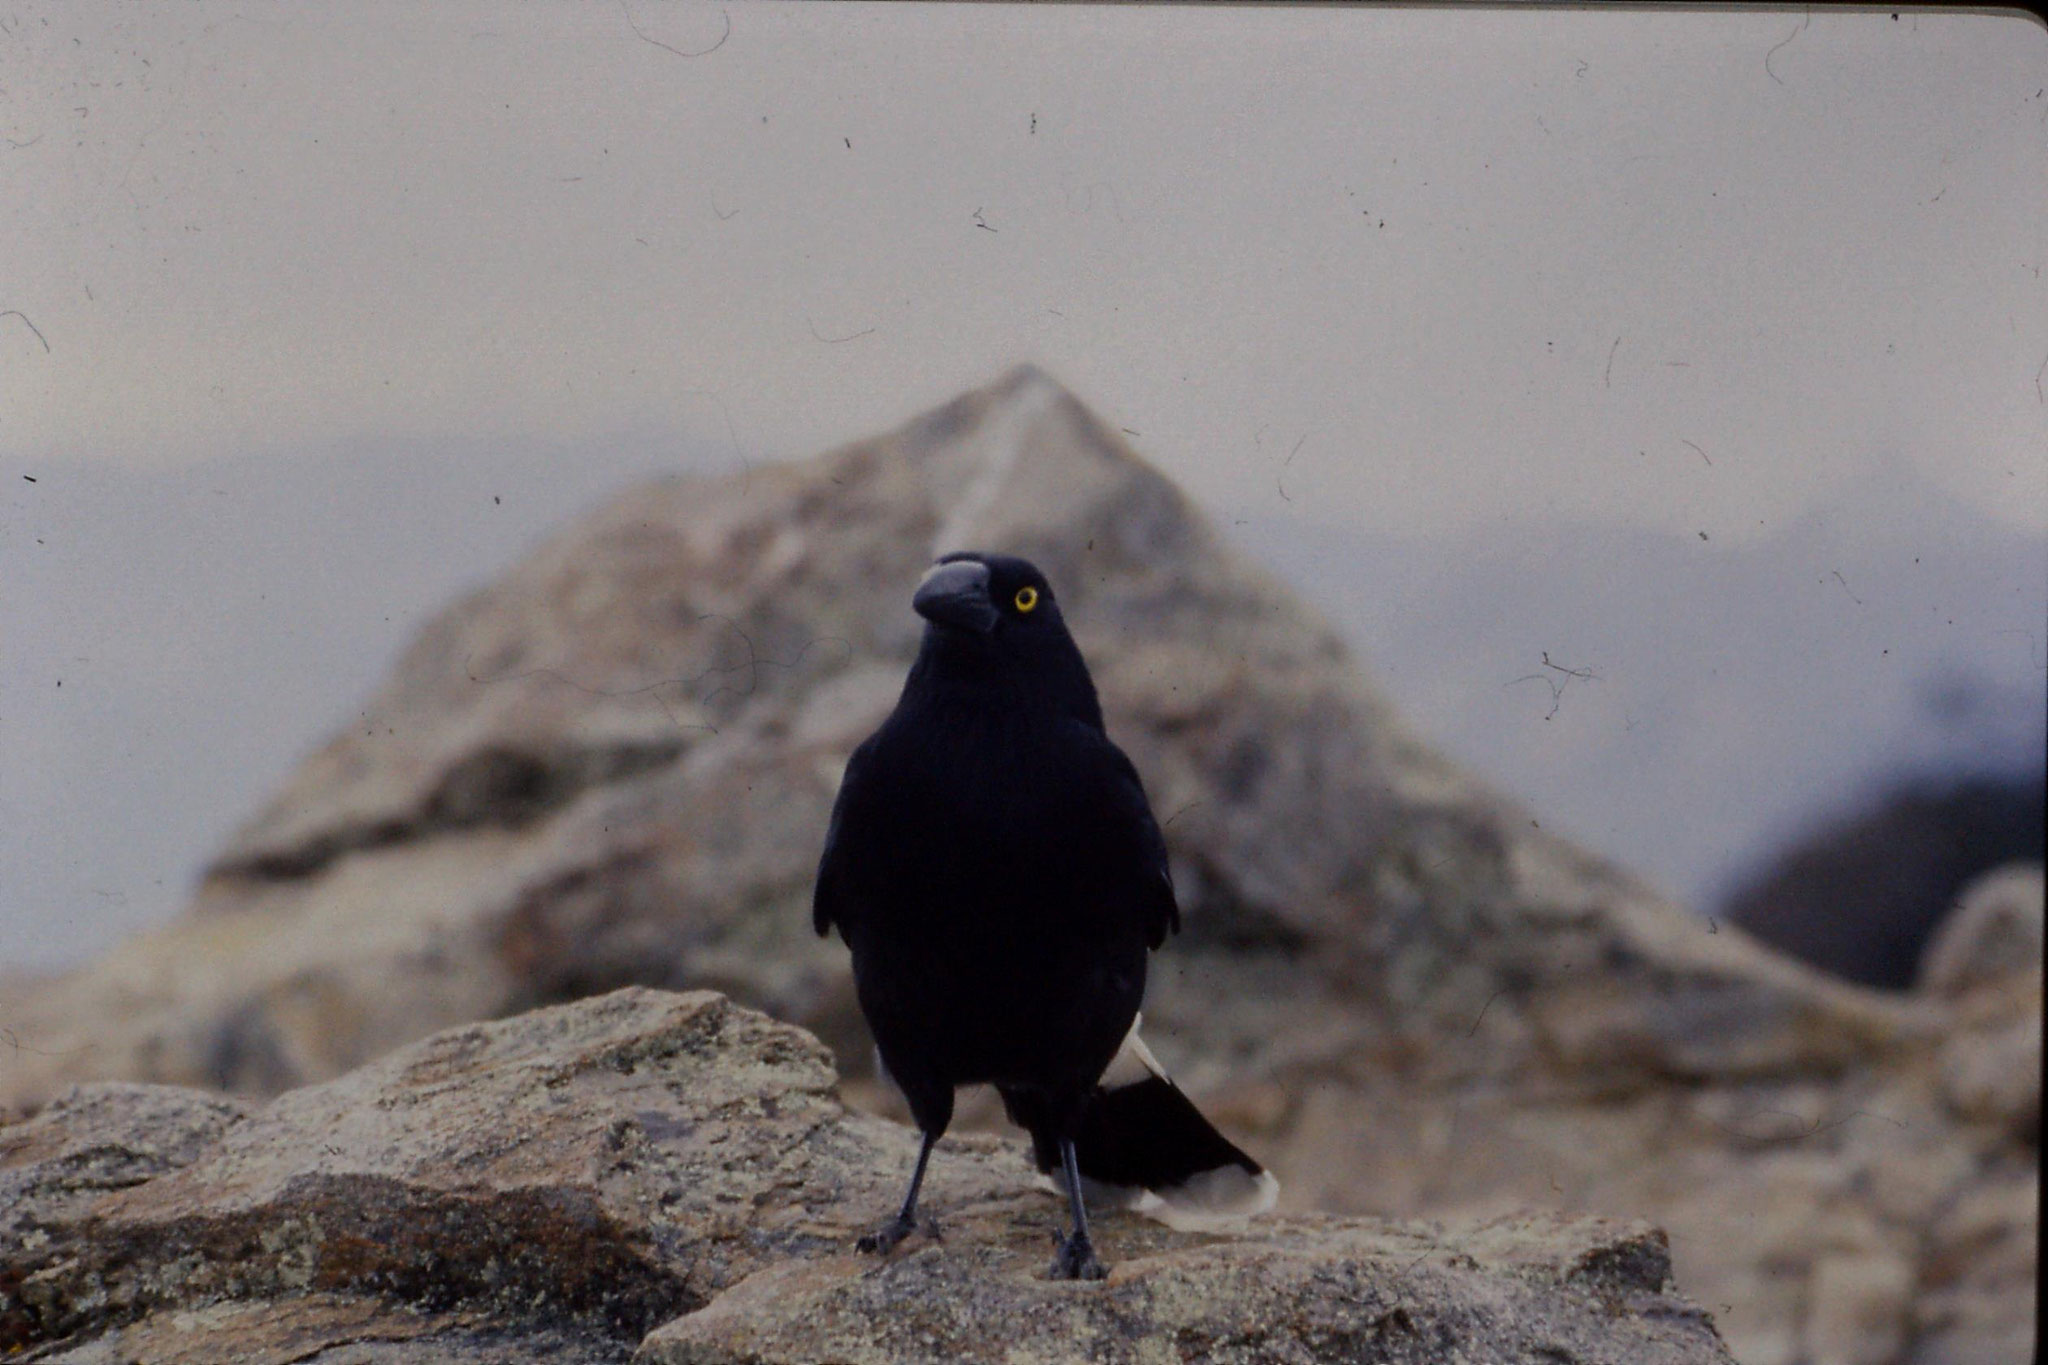 8/10/1990: 28: Warrumbingle Nat. Pk., pied currawong who shared our lunch